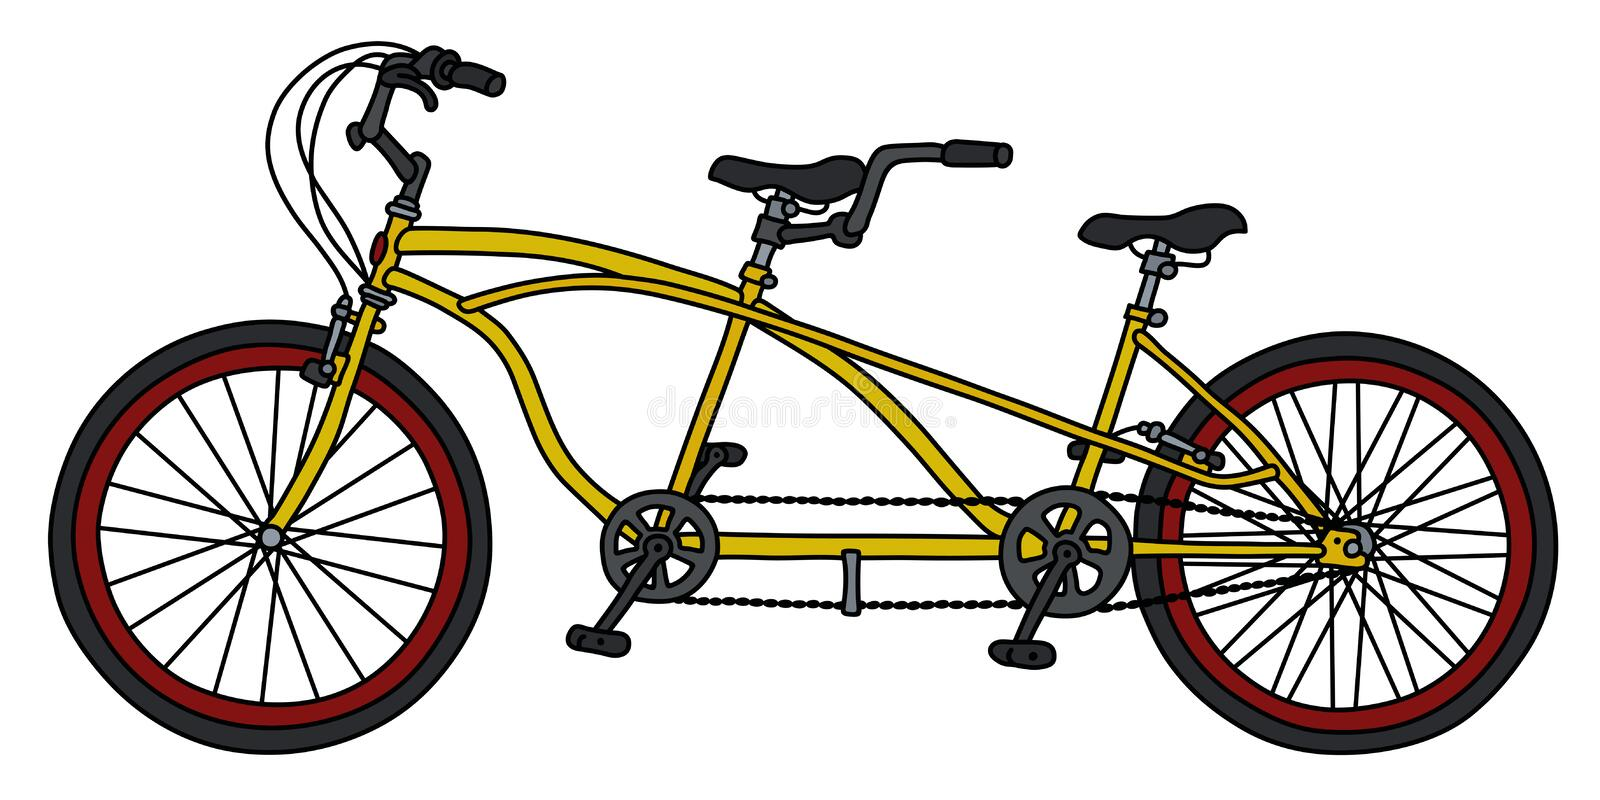 The yellow tandem bicycle vector illustration